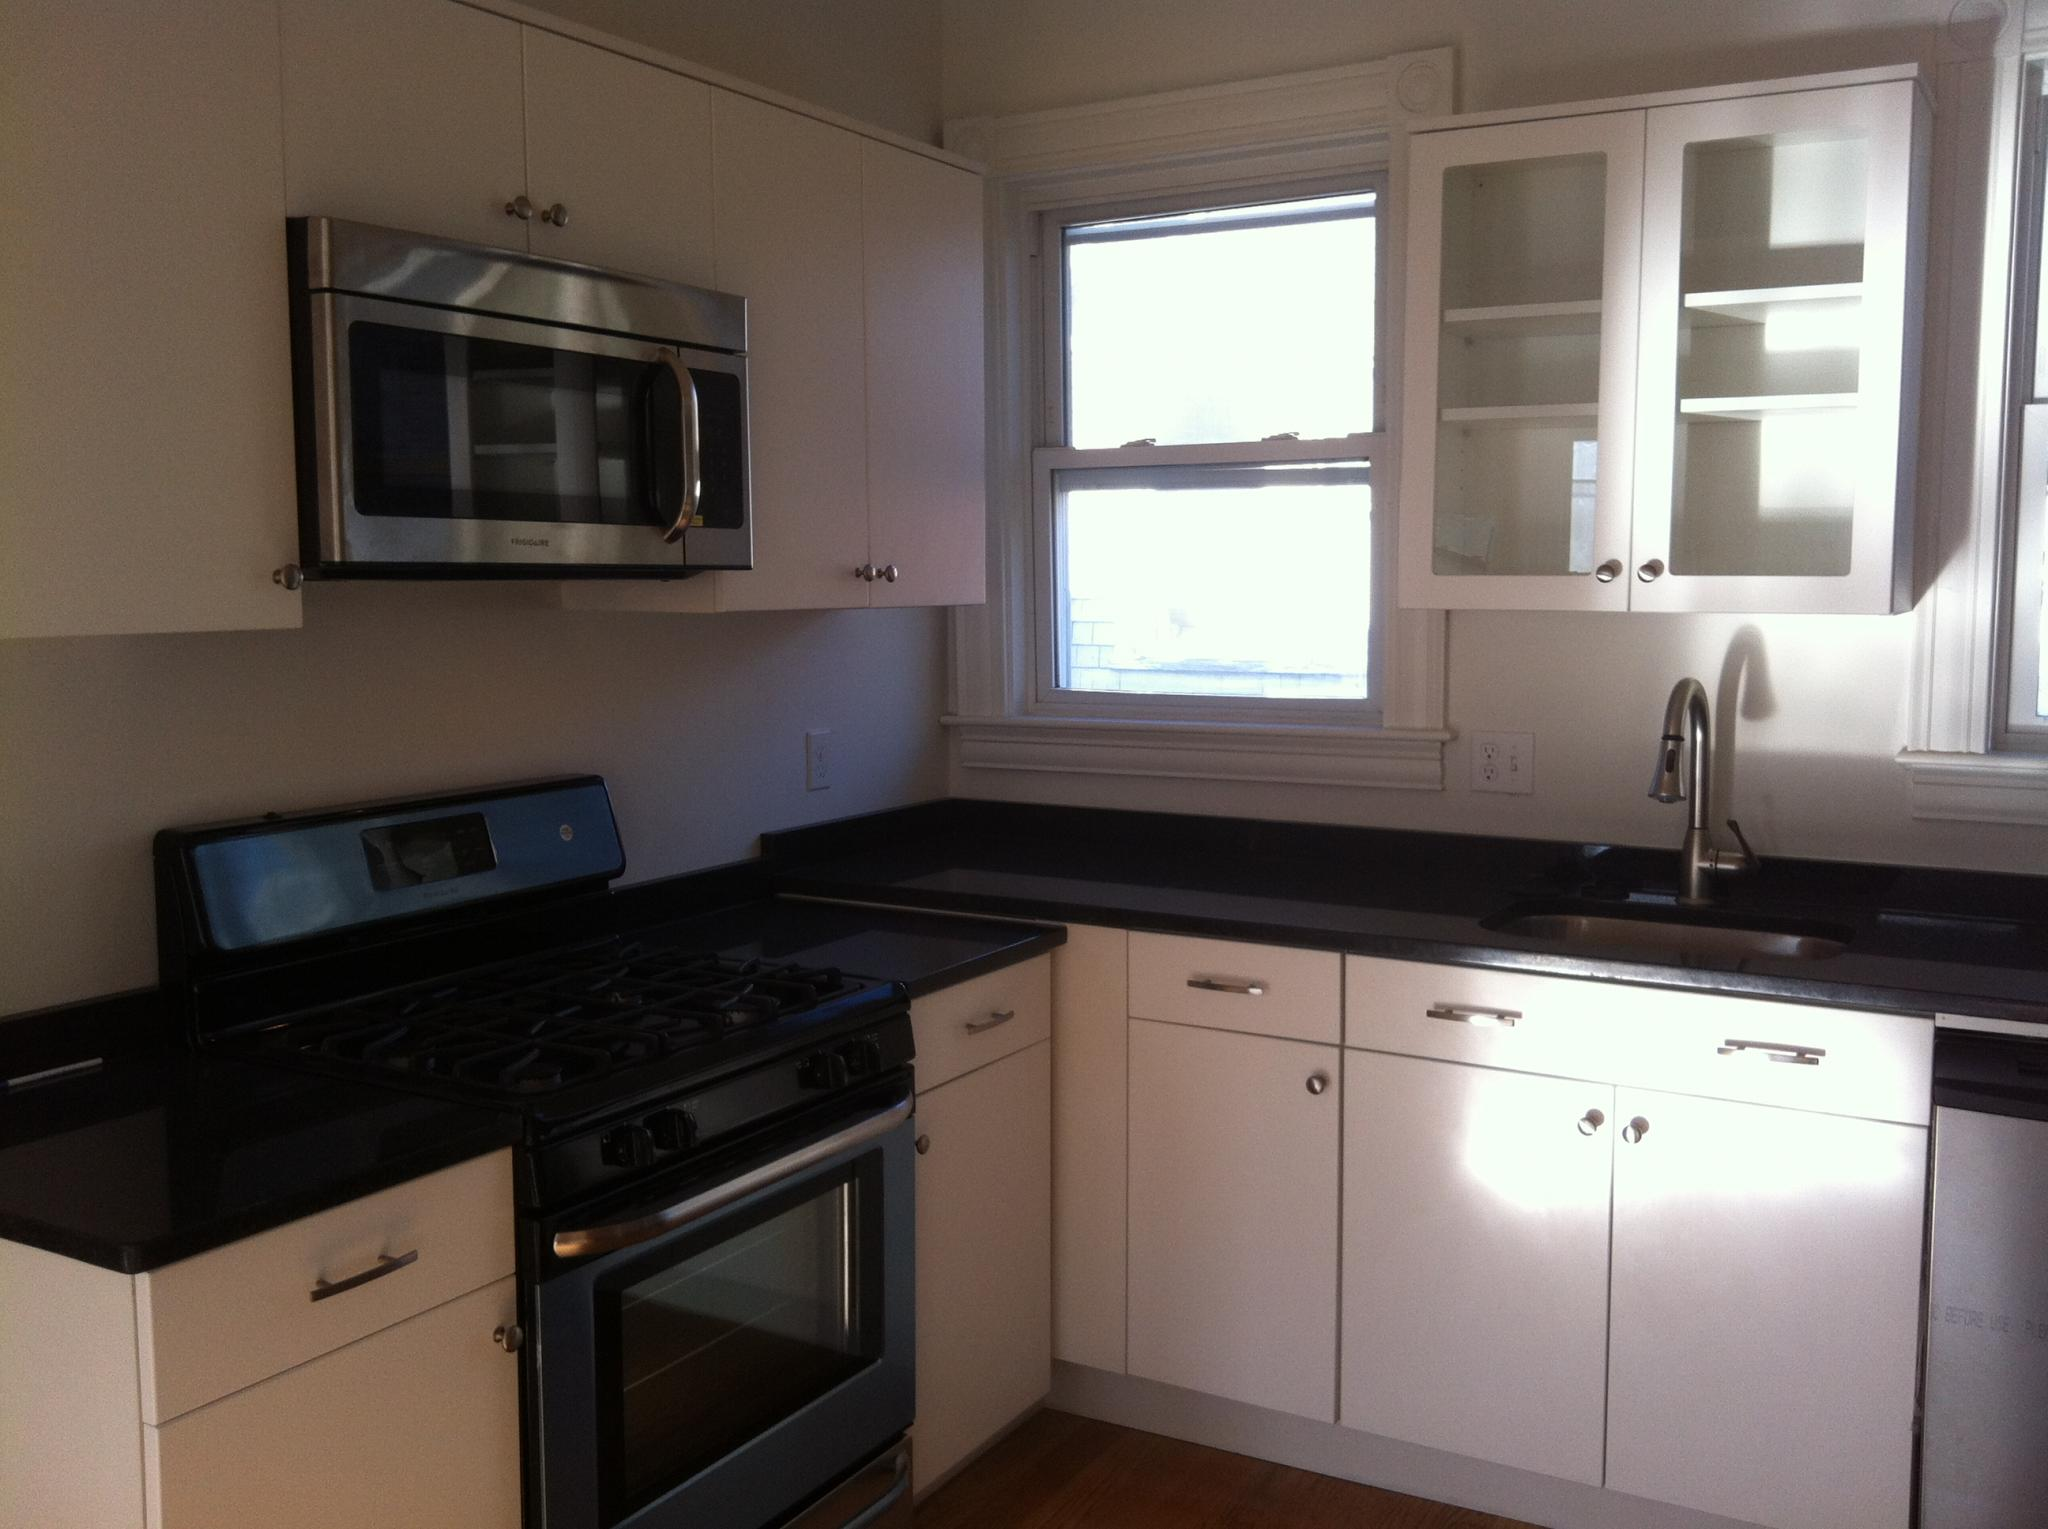 3 Bd on WELD AVE., Laundry in Building, Modern Kitchen, Deck, Porch